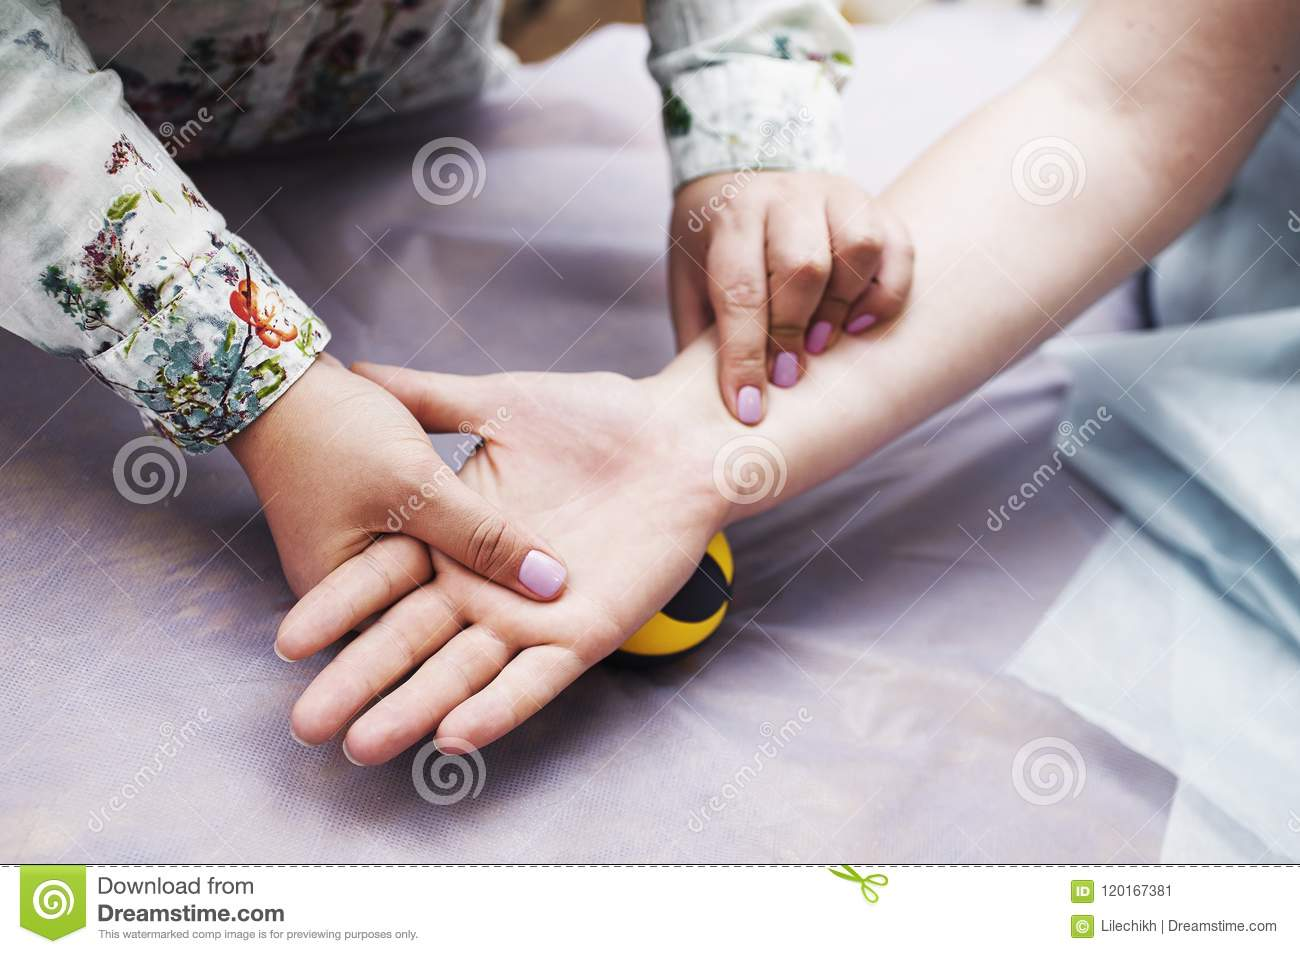 The masseur makes a hand massage to a woman in the medical office